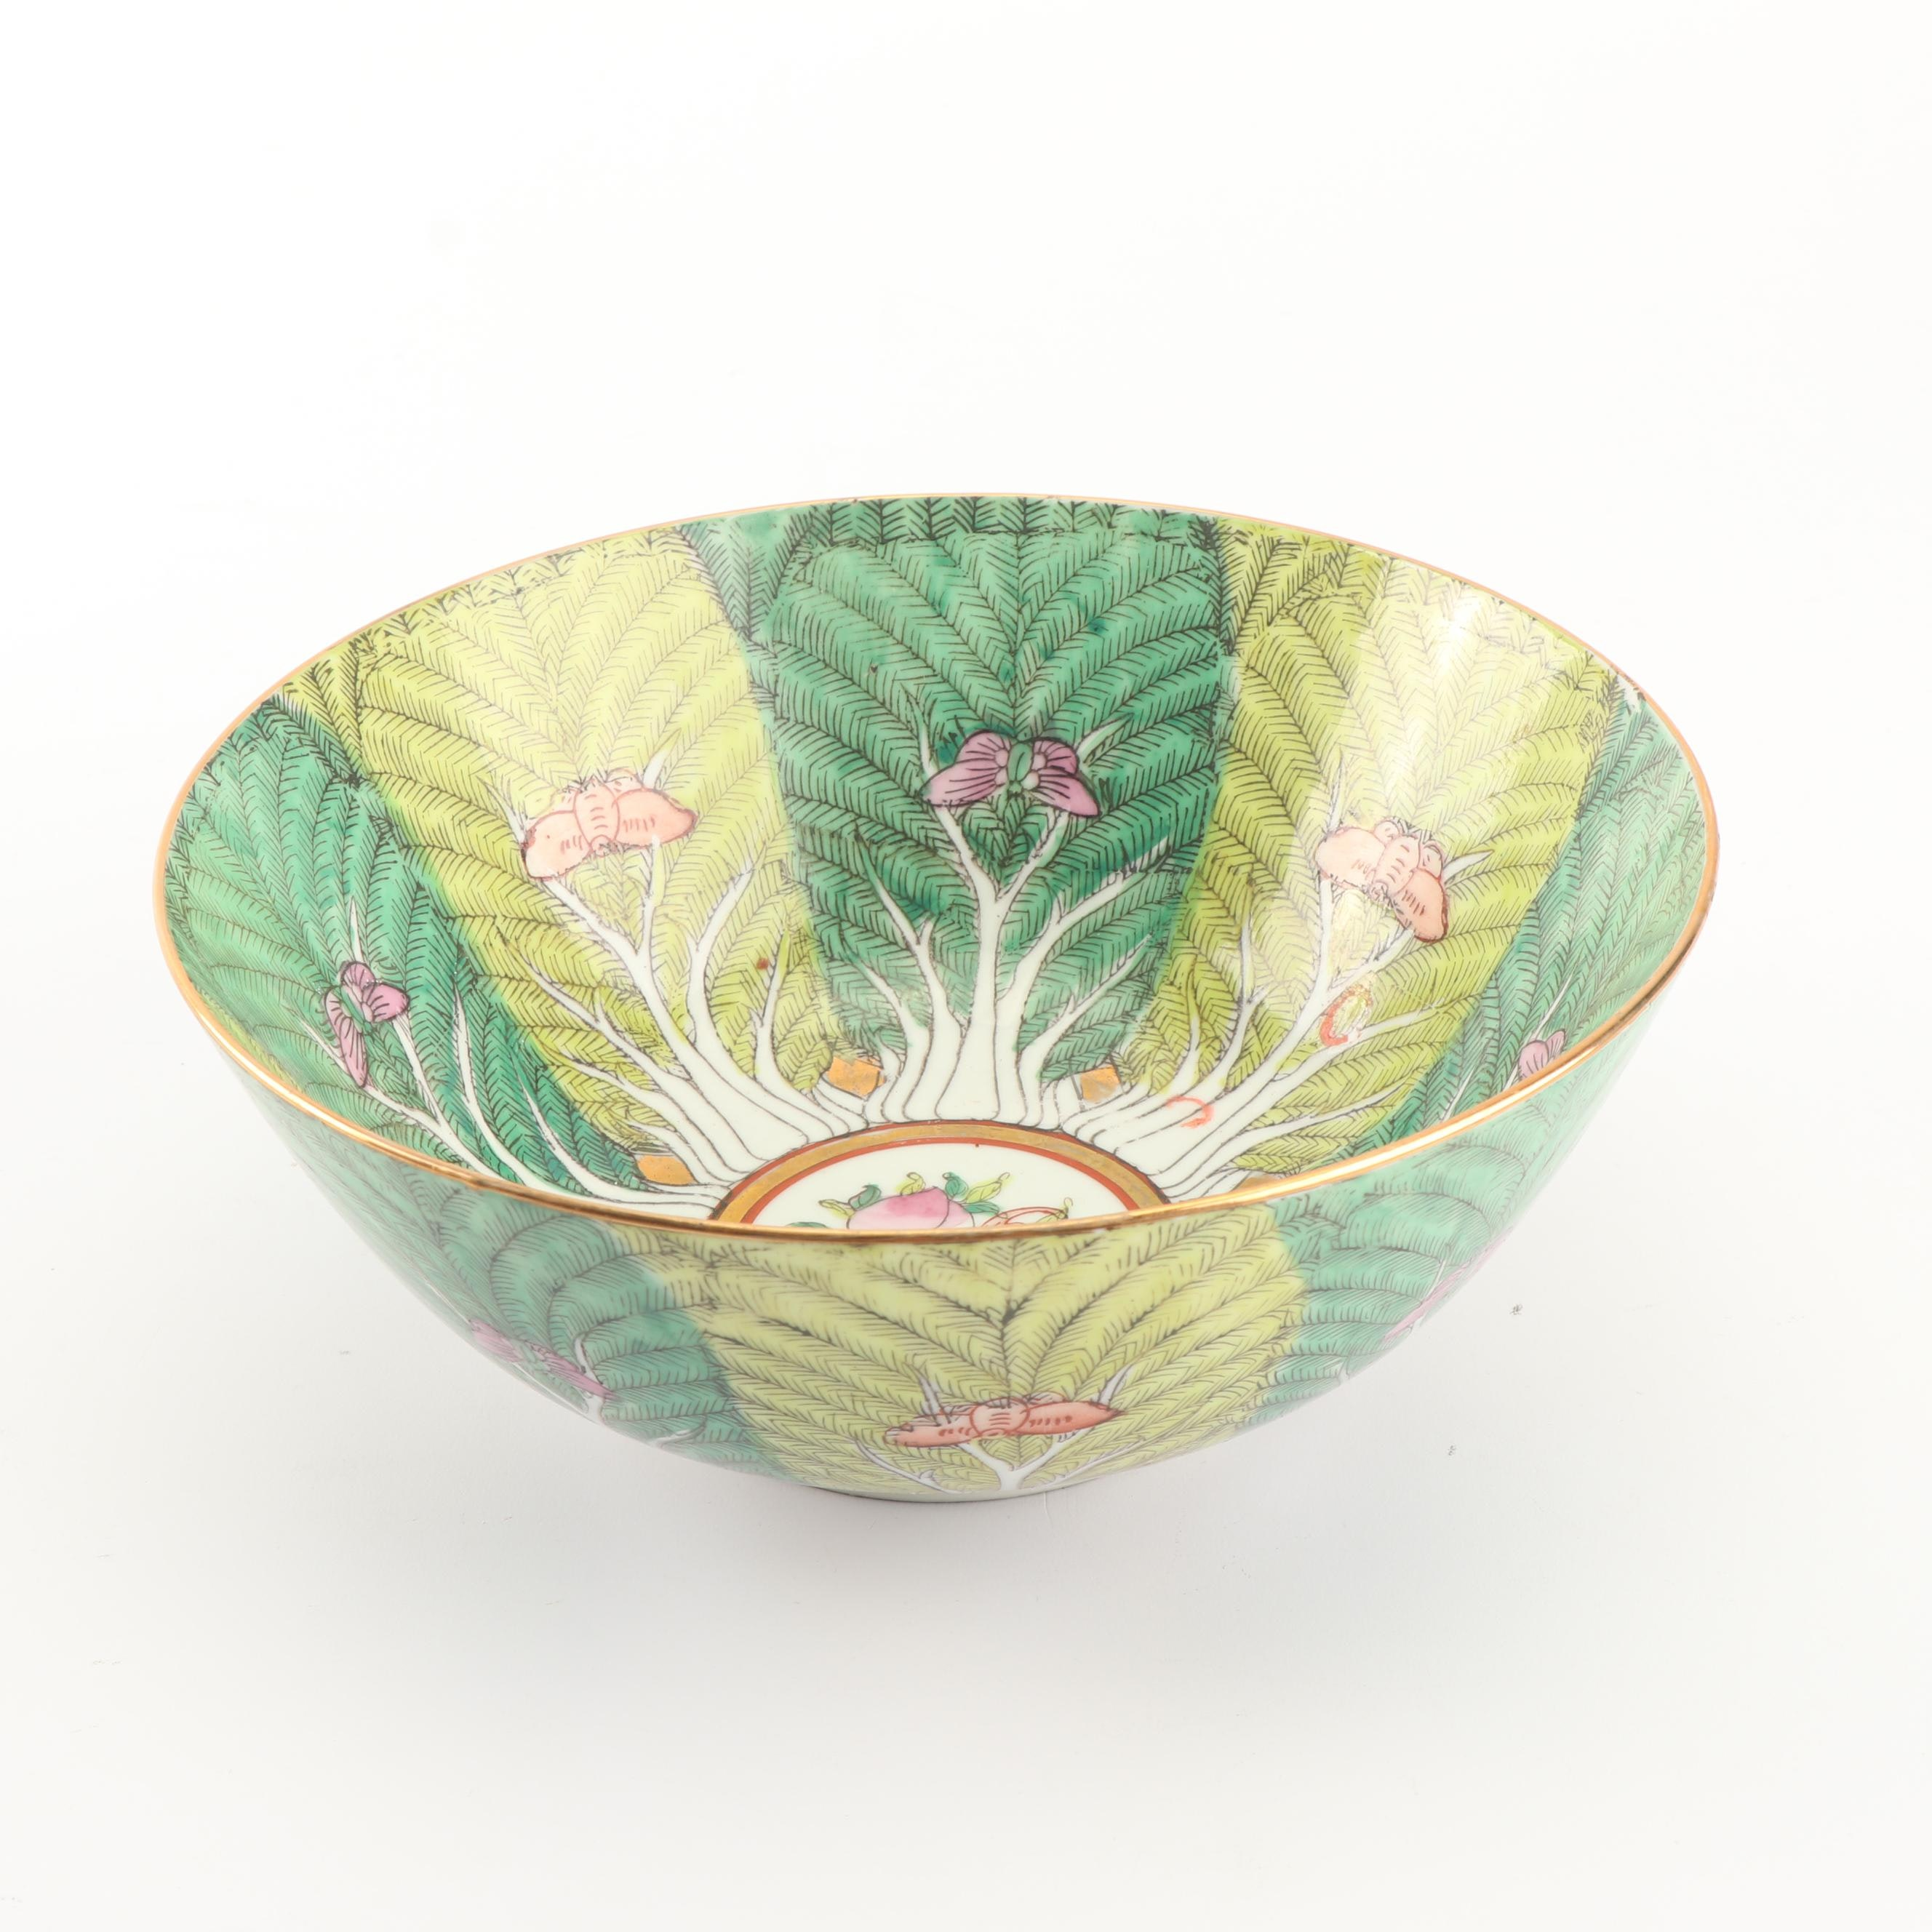 Chinese Cabbage Leaf and Butterfly Porcelain Bowl